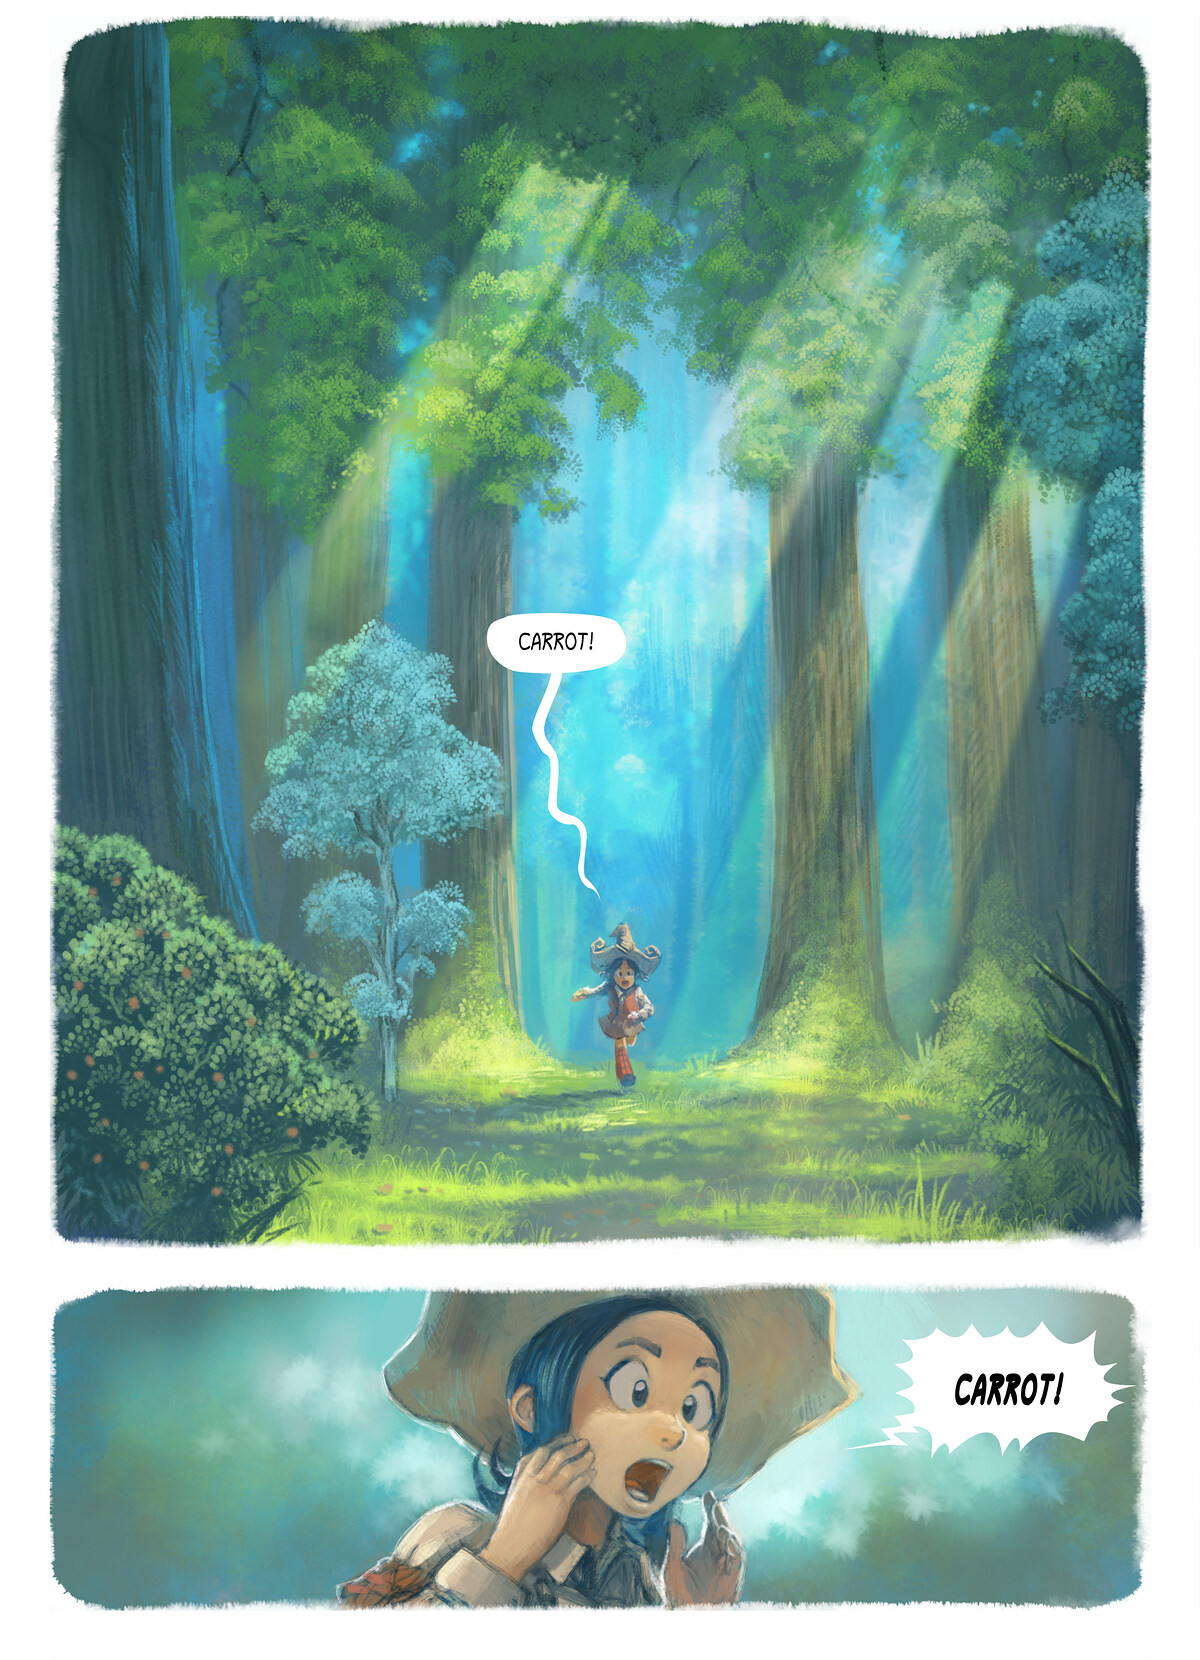 A webcomic page of Pepper&Carrot, episódio 7 [pt], página 1